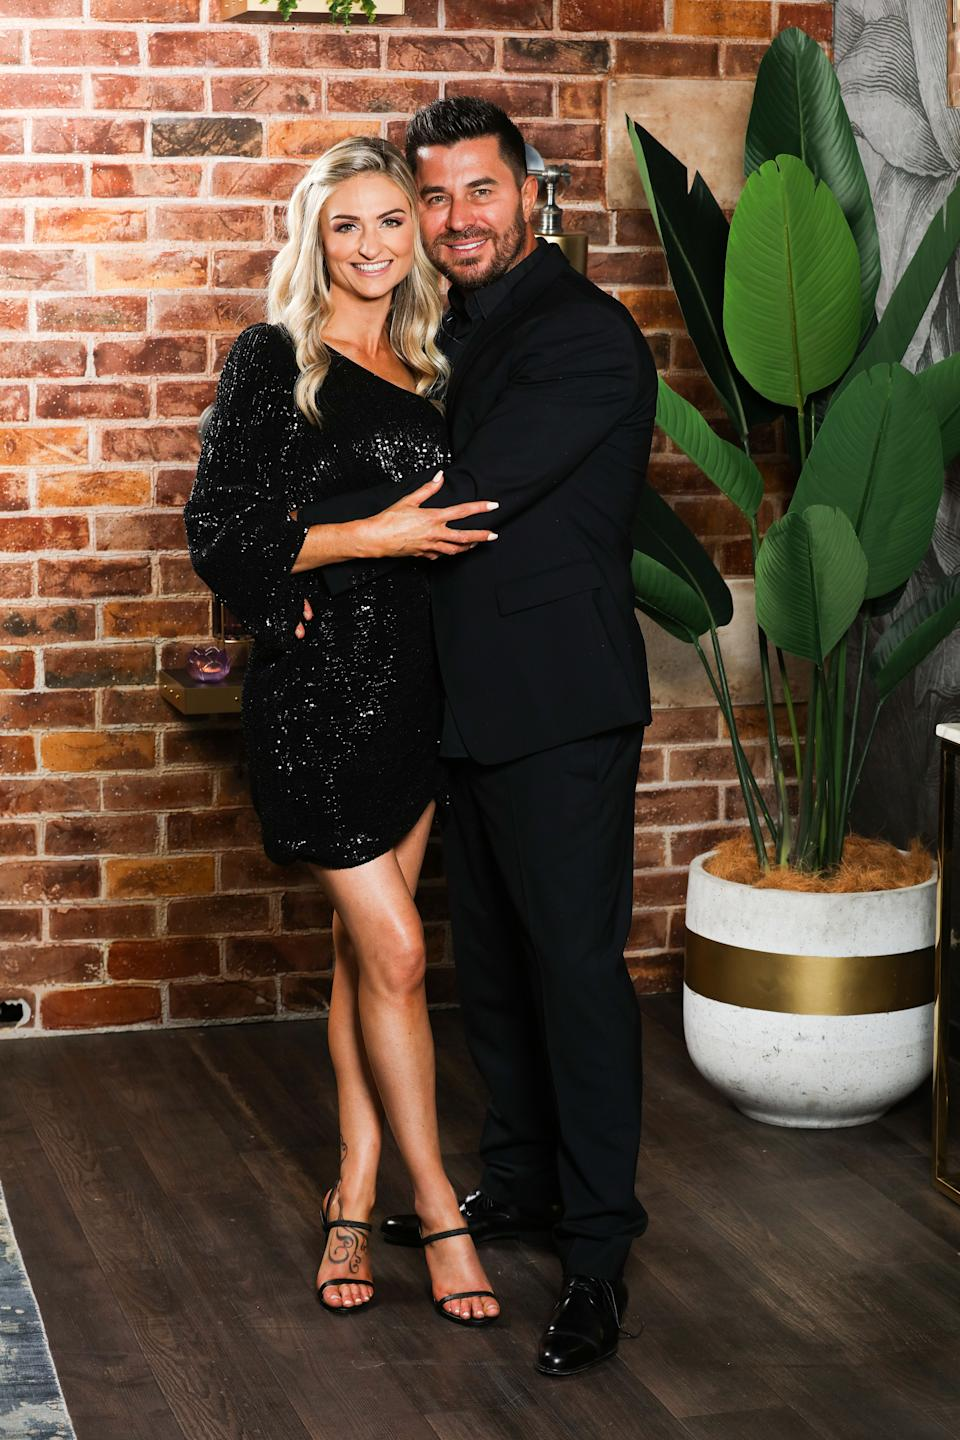 James and Jo from MAFS